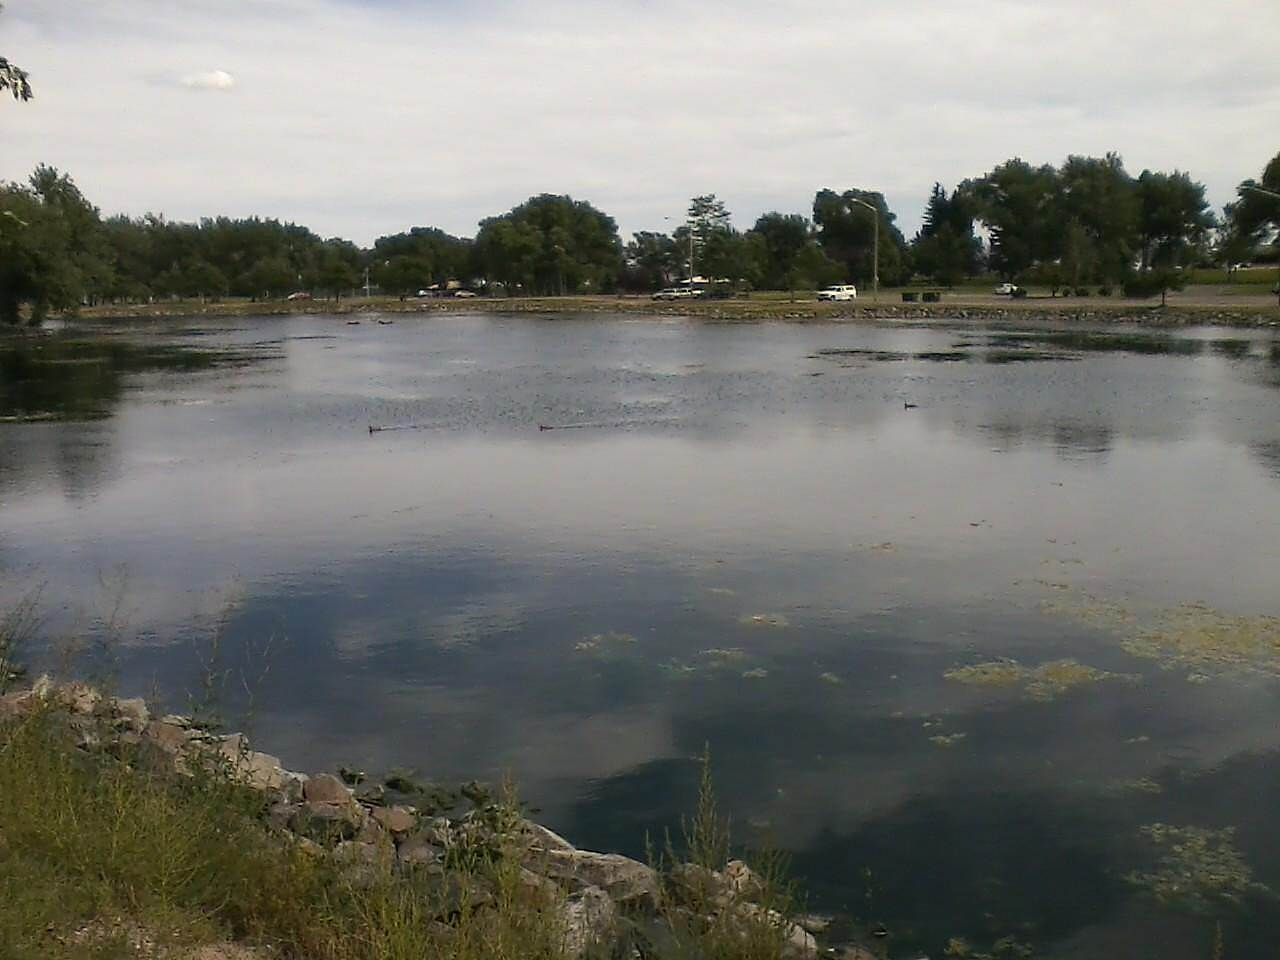 East Cheyenne Greenway Lake at Holliday Park